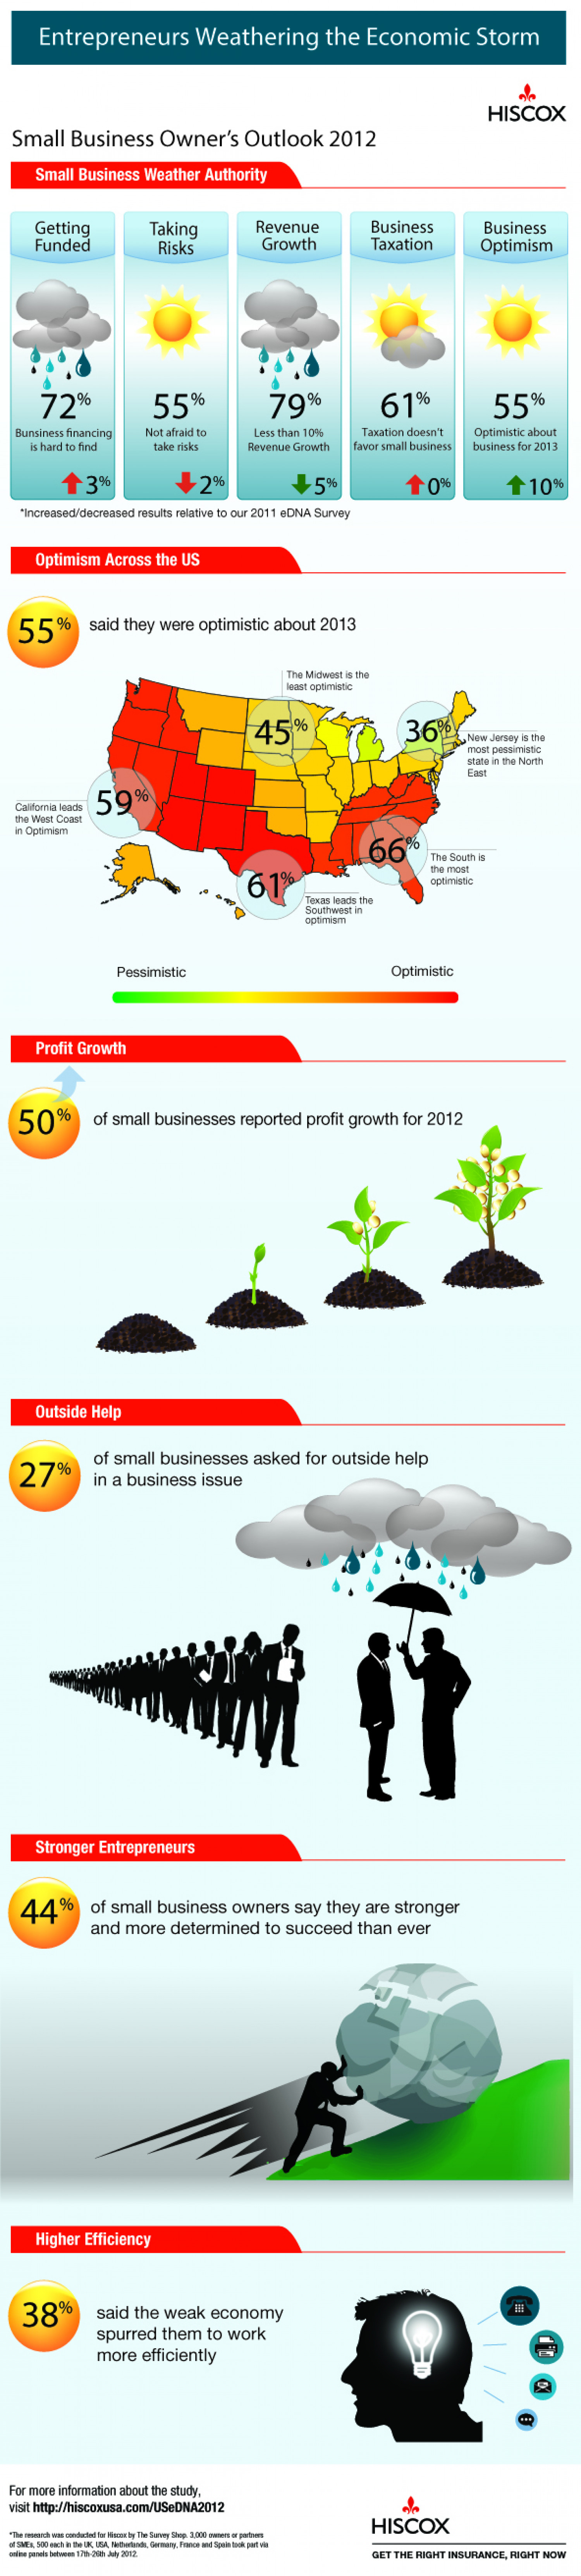 Small Business Survey Reports Outlook for US Small Business Owners is Partly Sunny Infographic